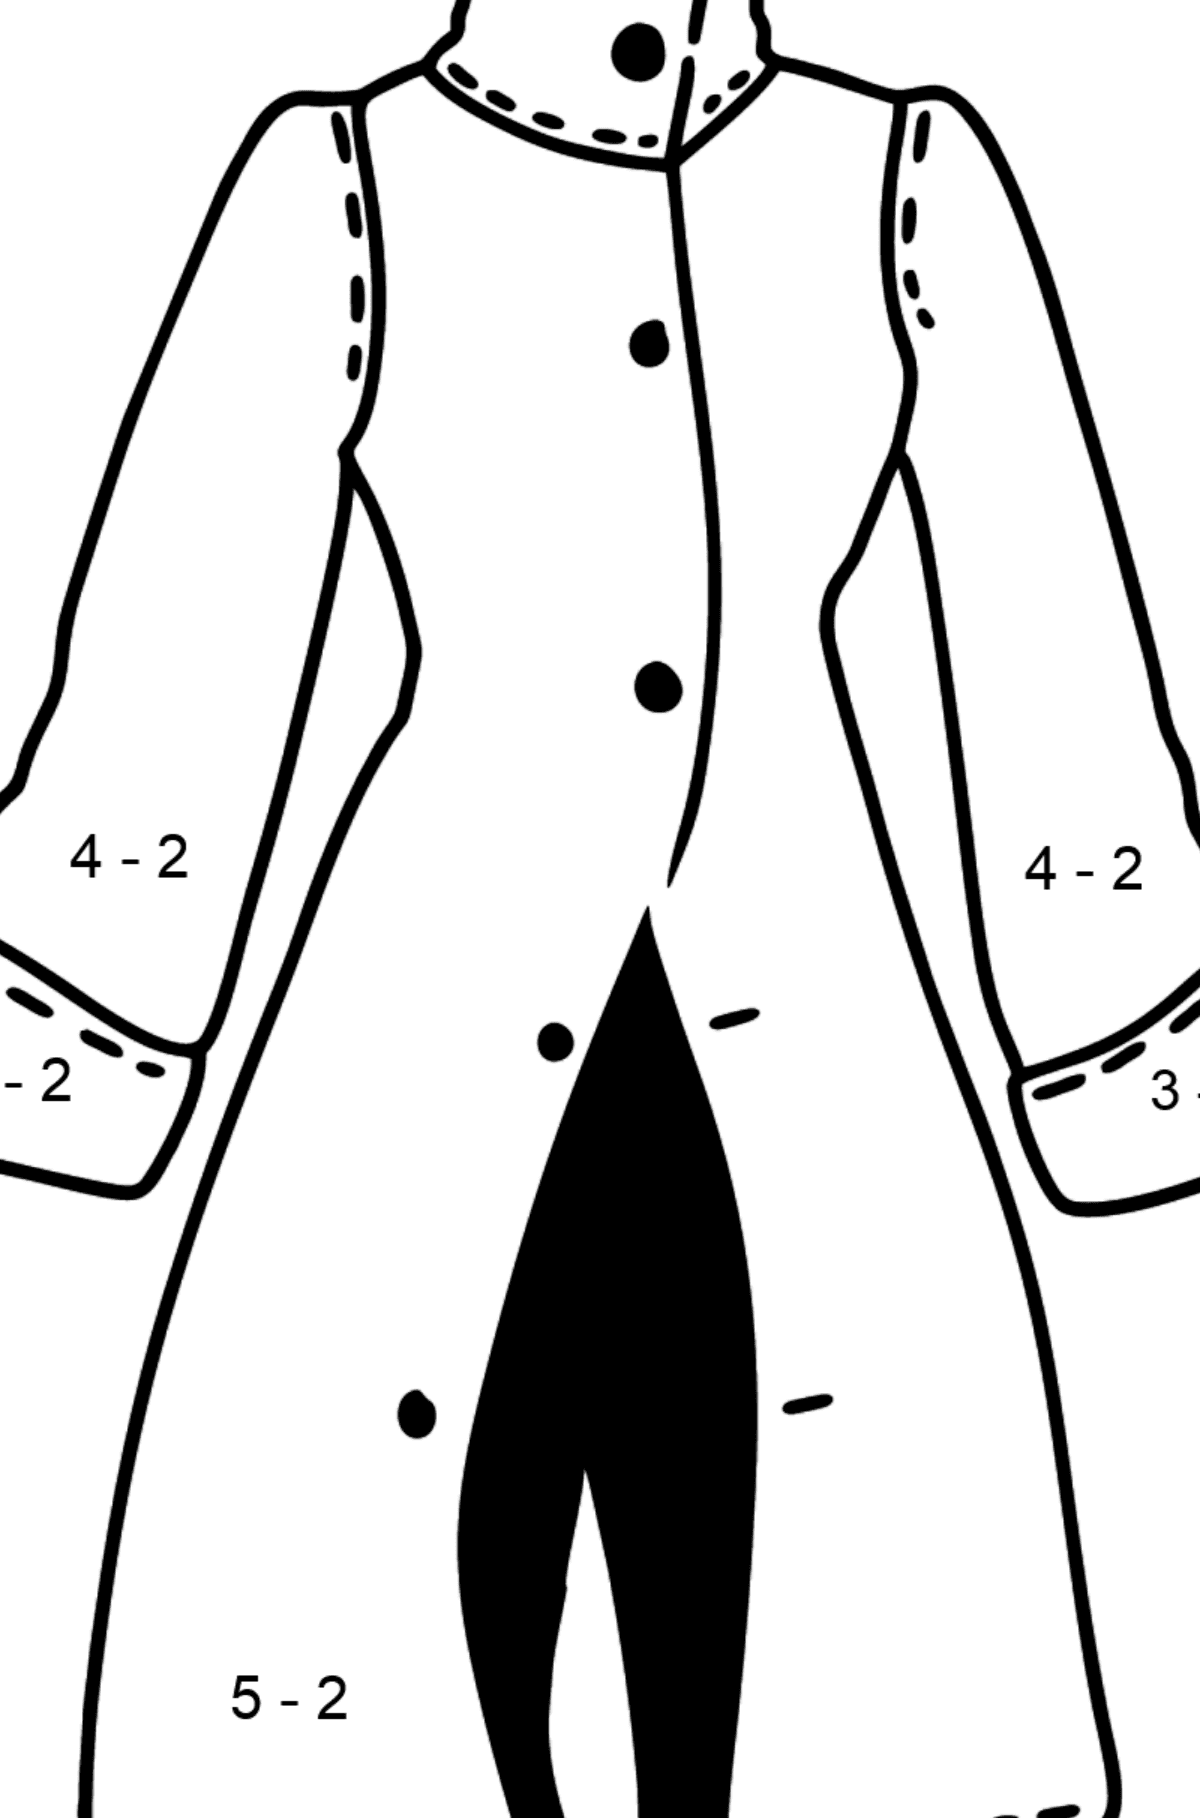 Coat coloring page - Math Coloring - Subtraction for Kids